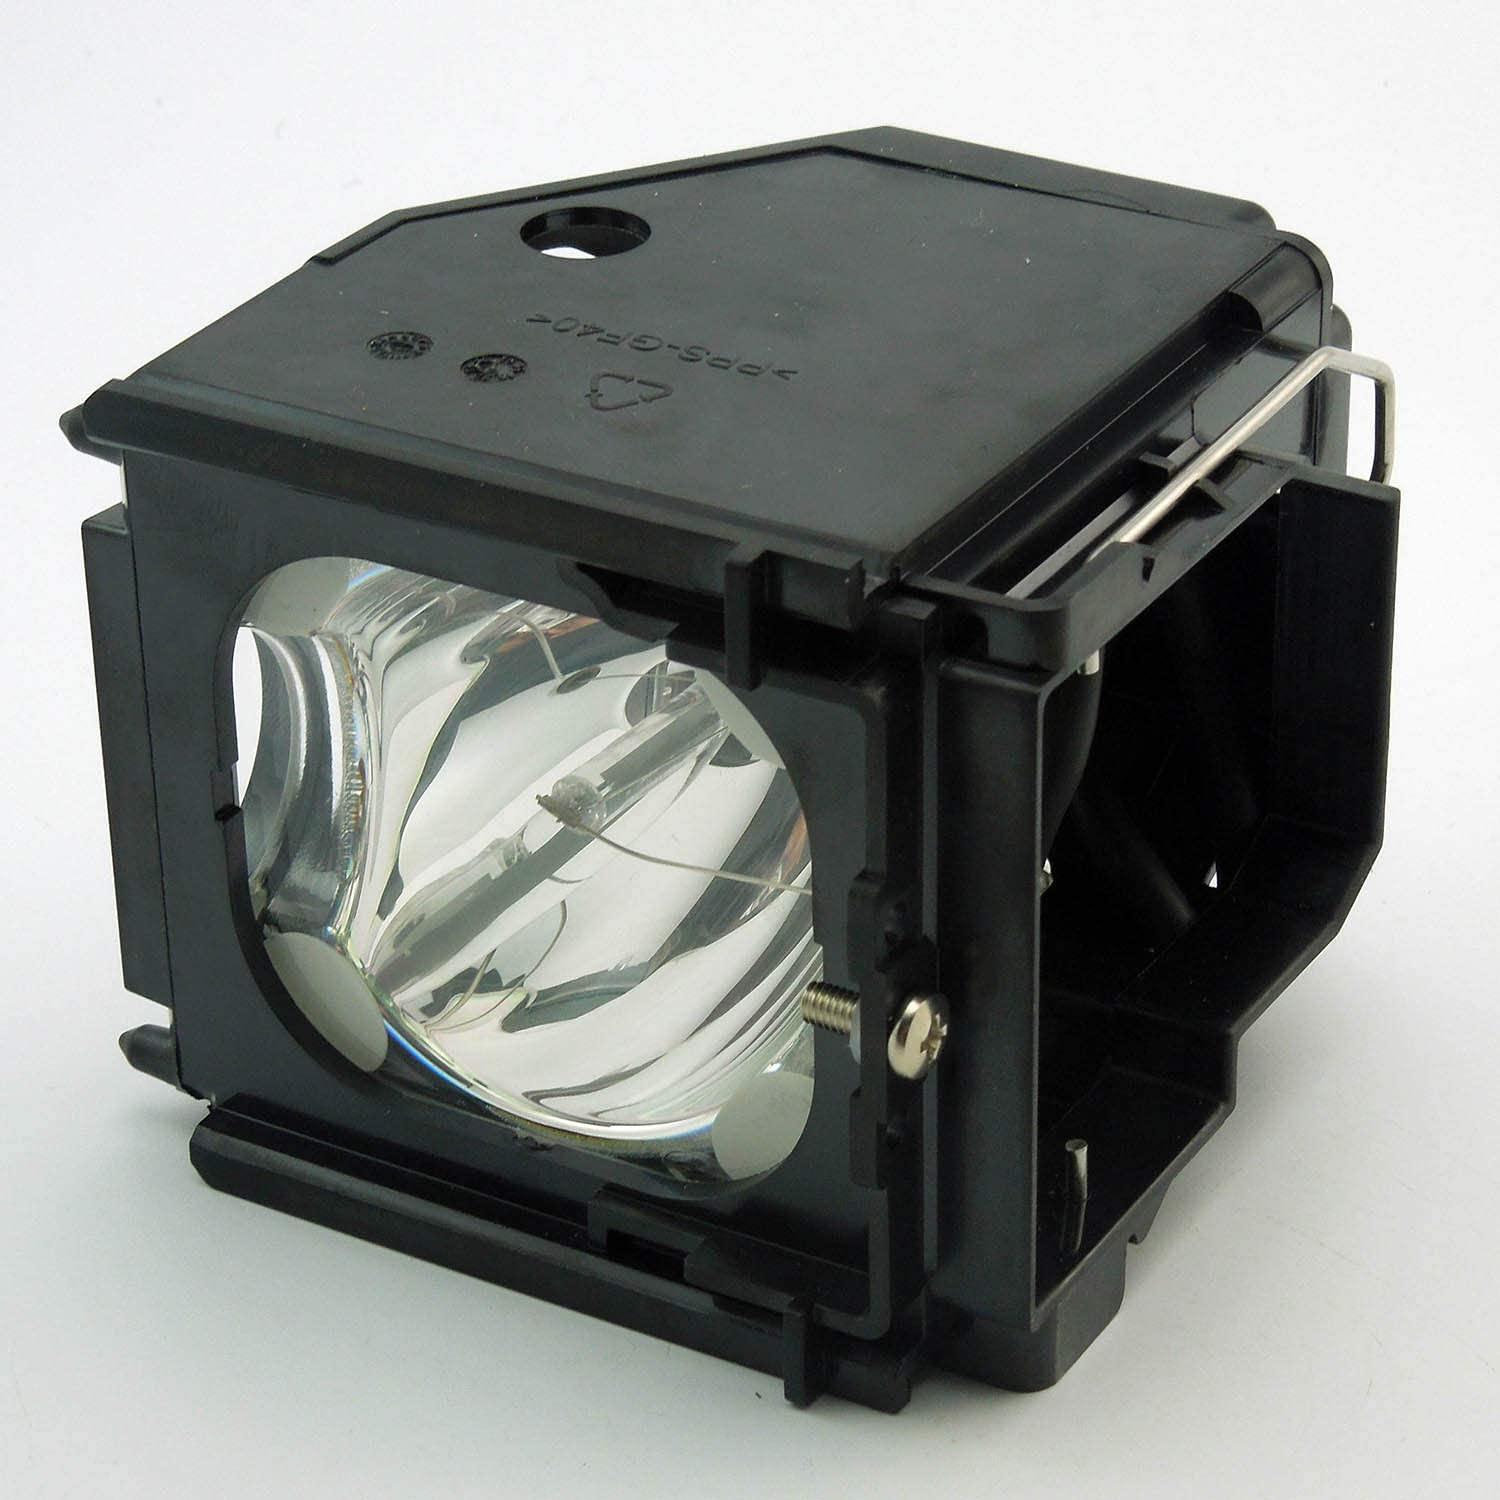 Quality 270414 Replacement Lamp//Bulb 270414 w//Housing Compatible with RCA M52WH72SYX2 M52WH73YX1 M50WH74YX1 M50WH74S M50WH74SYX1 M50WH74SYX2 Coming with 365 Days Warranty CTLAMP A